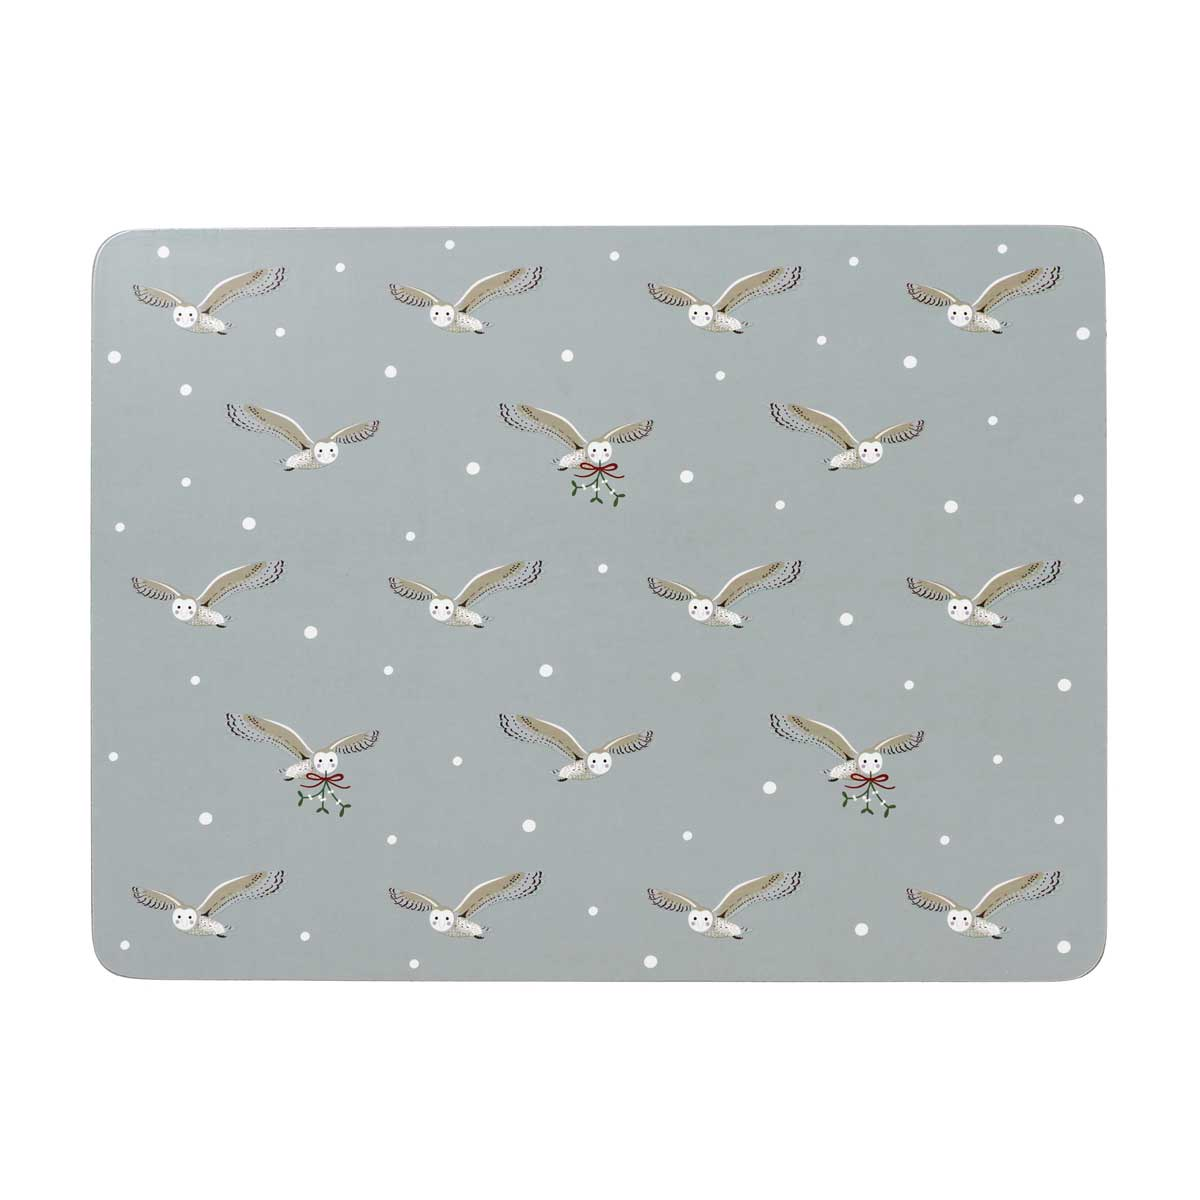 Night Owl Placemats - Set of 4